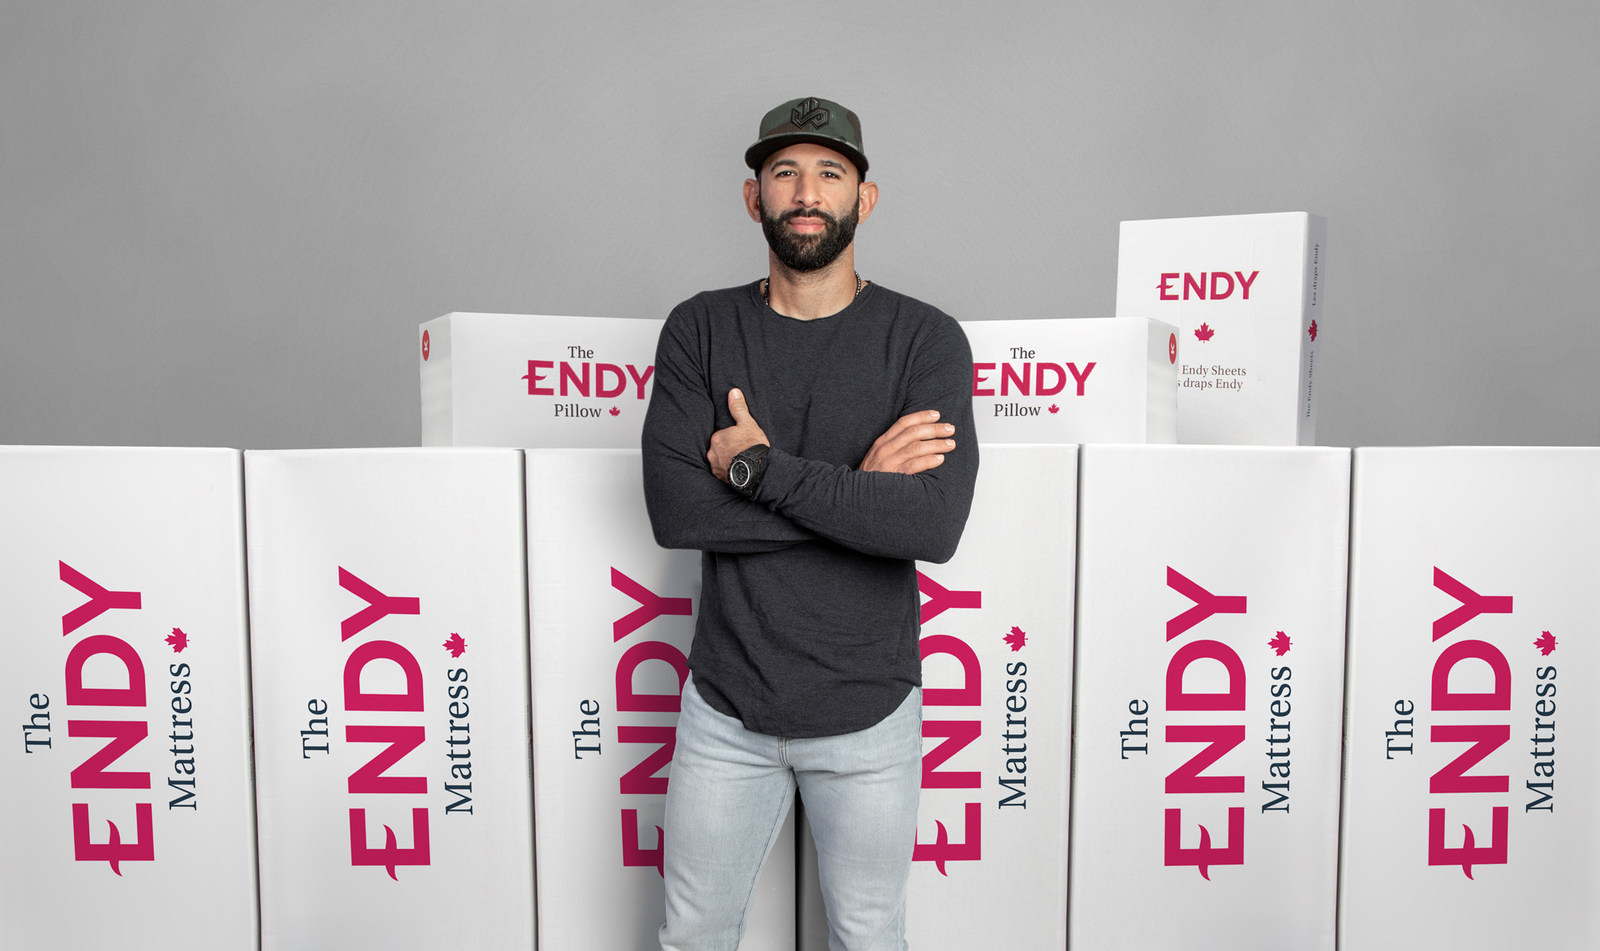 Iconic athlete and former Toronto Blue Jays star Jose Bautista joins Endy, Canada's leading online mattress brand, as investor. (CNW Group/Endy)